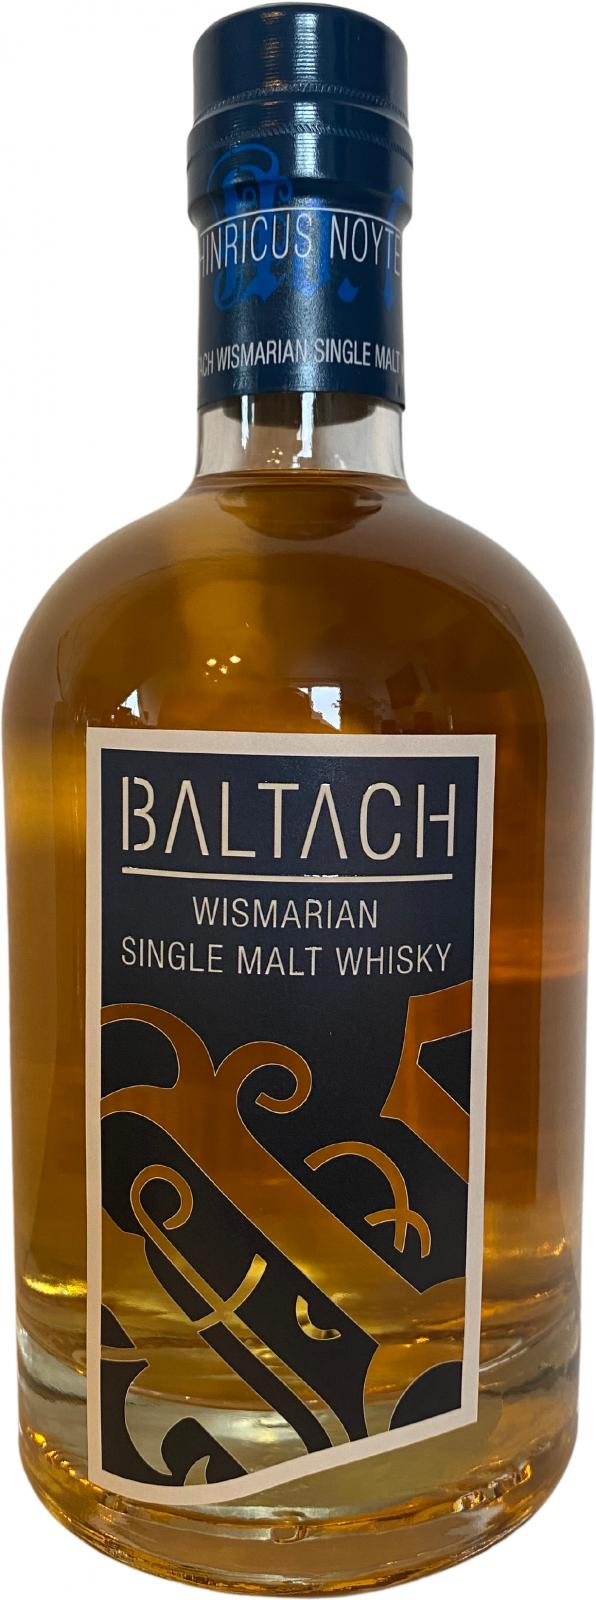 Baltach Wismarian Single Malt Whisky